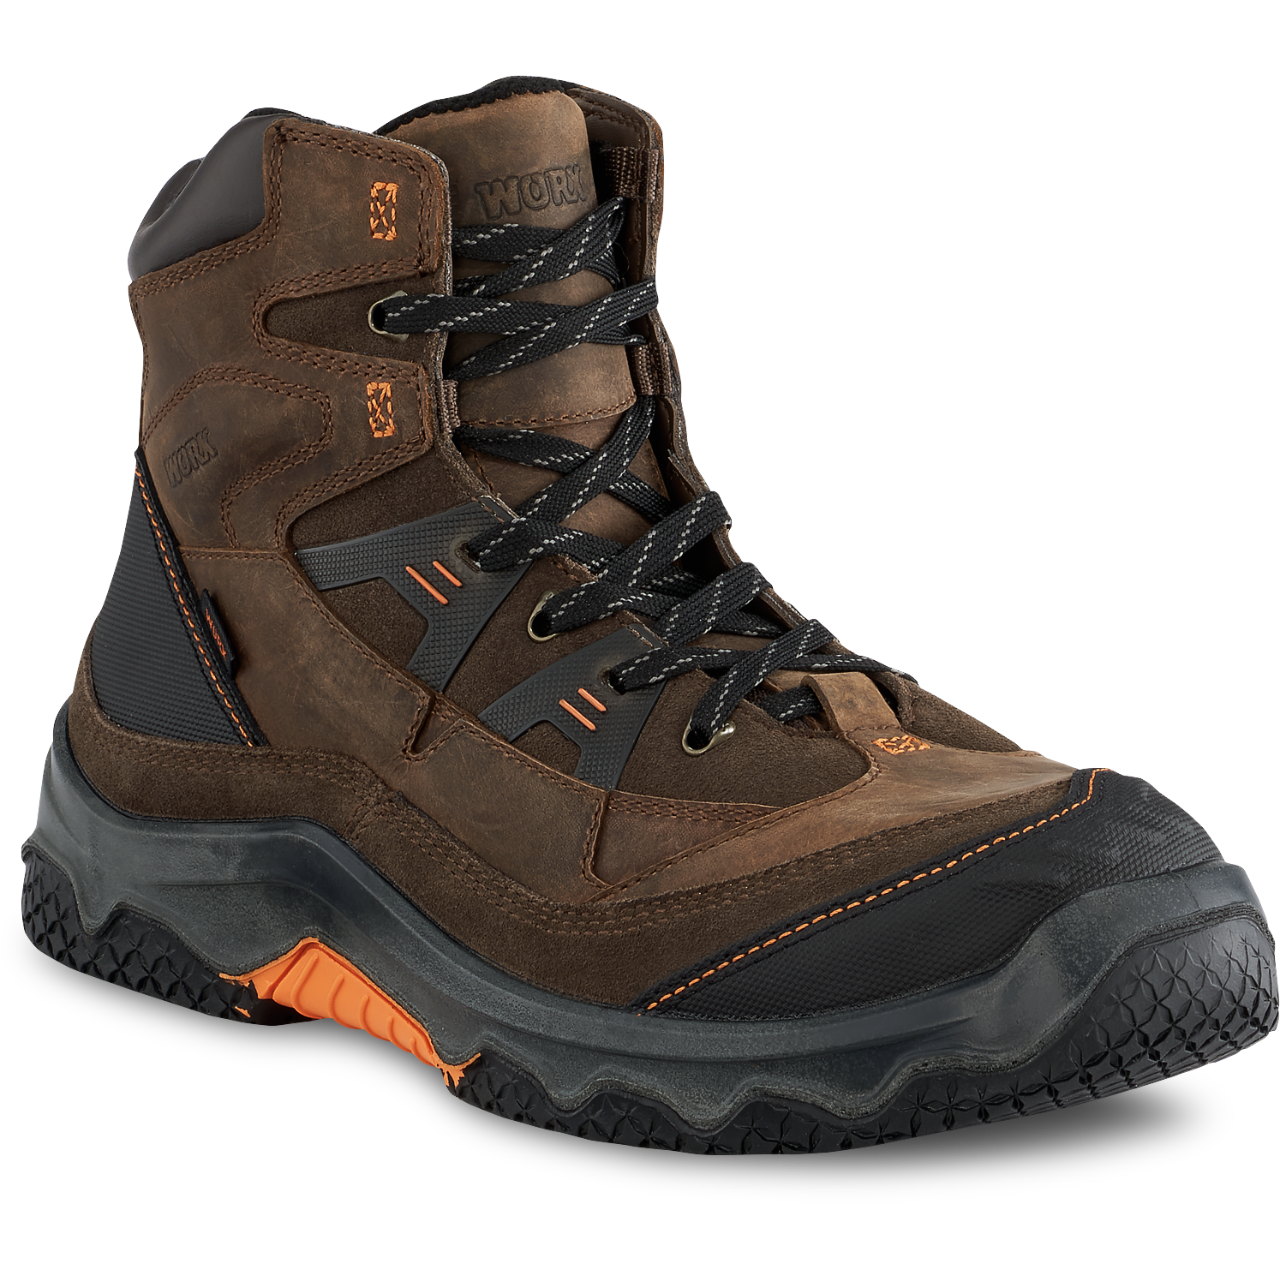 Worx 5623  Composite Toe - Waterproof - Electrical Hazard  Click here for specifications